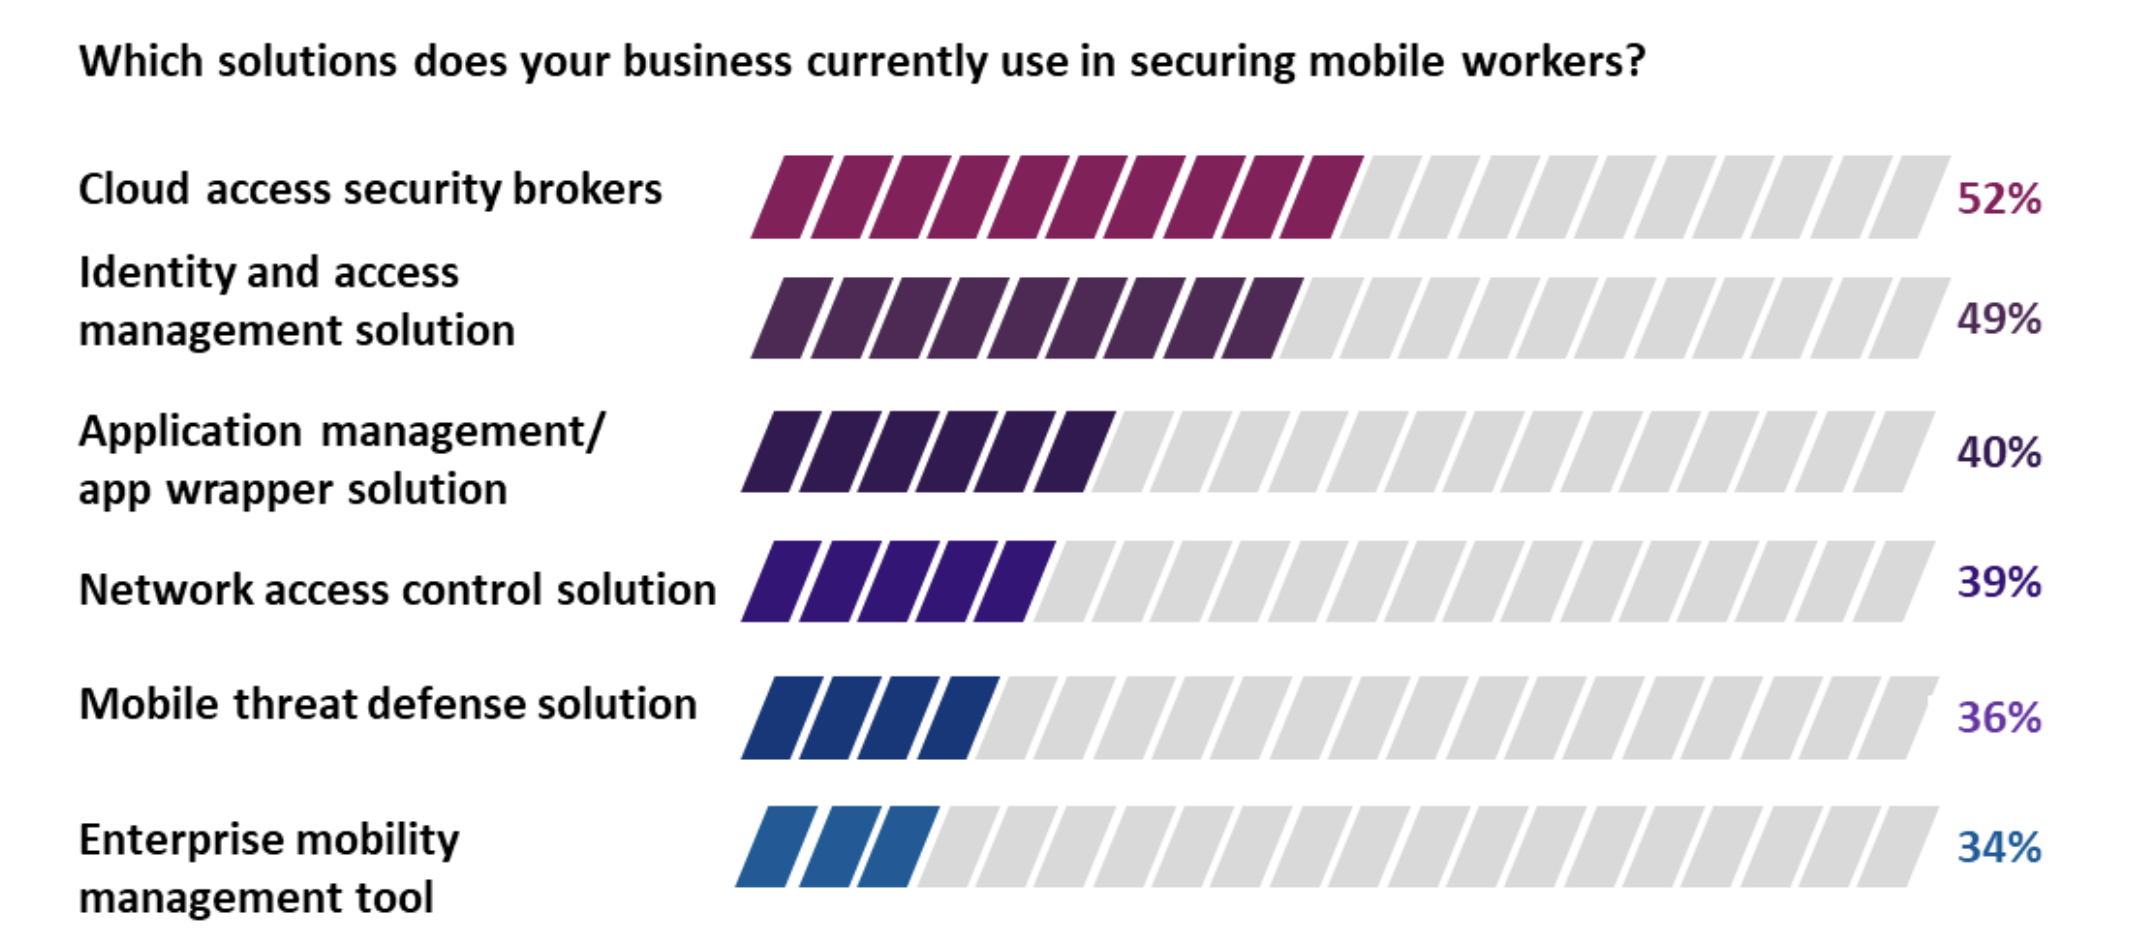 The solutions businesses are relying on to secure mobile workers